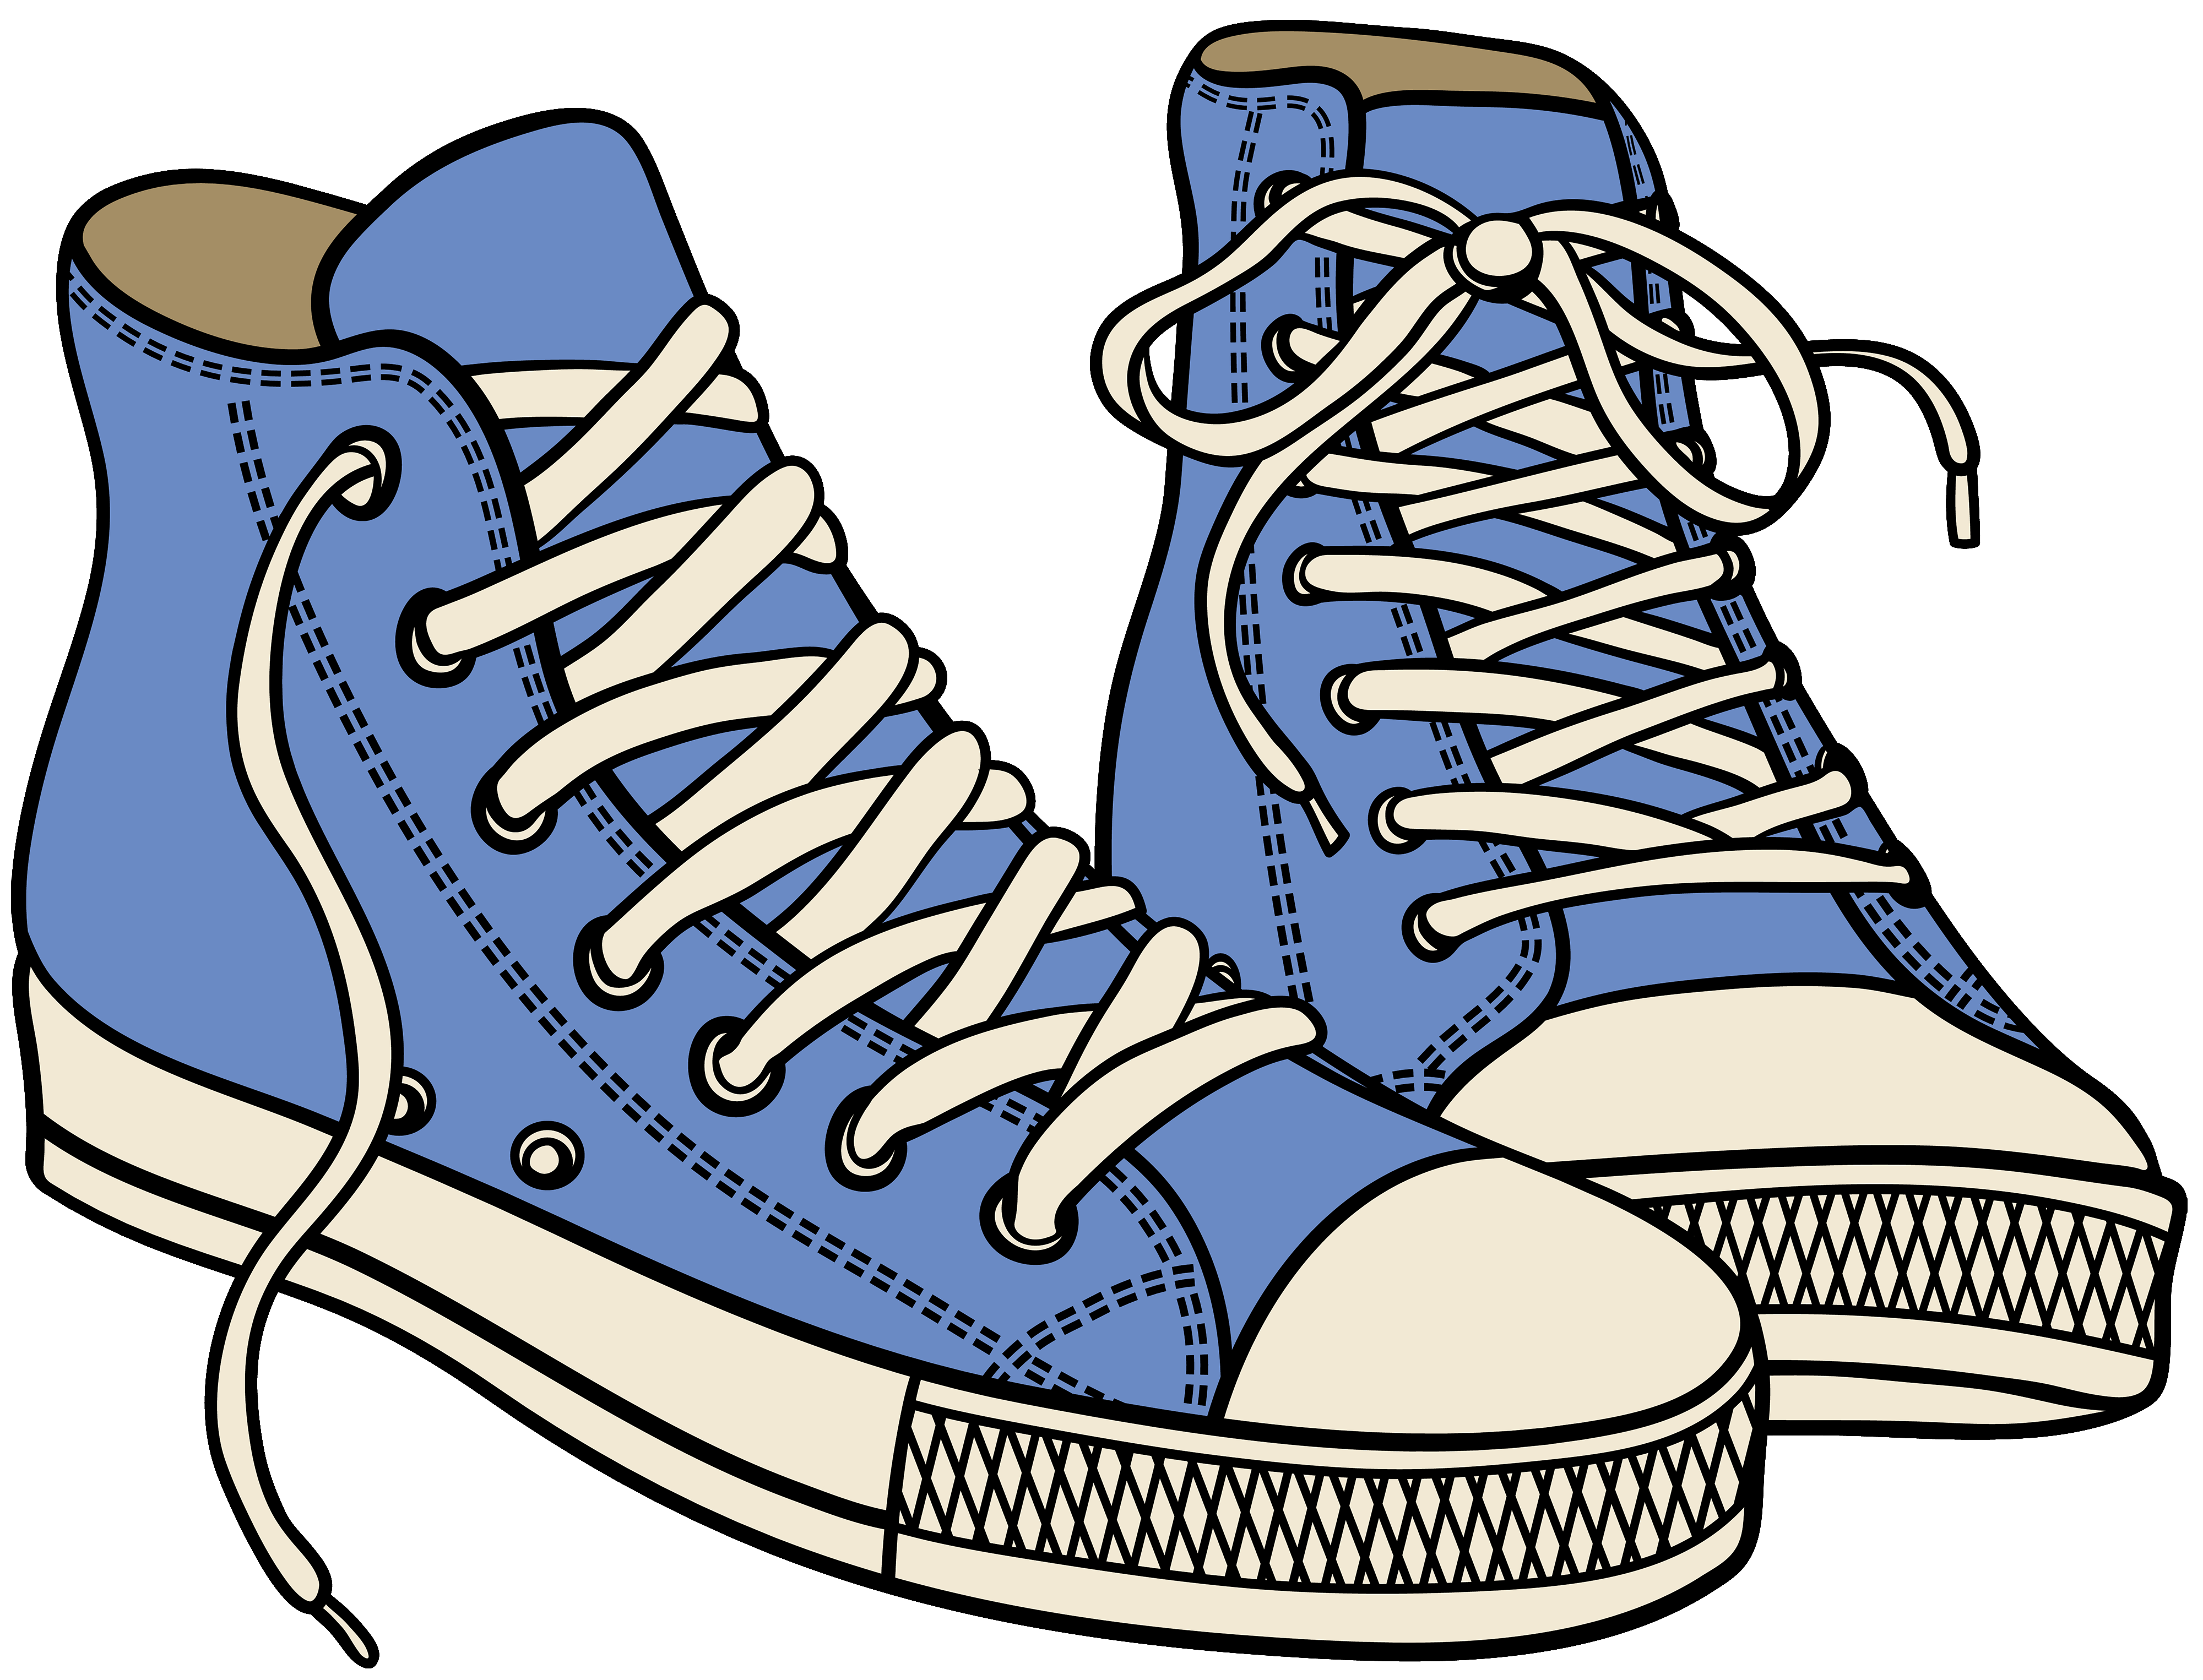 Sneaker tennis shoes clipart black and white free 2.